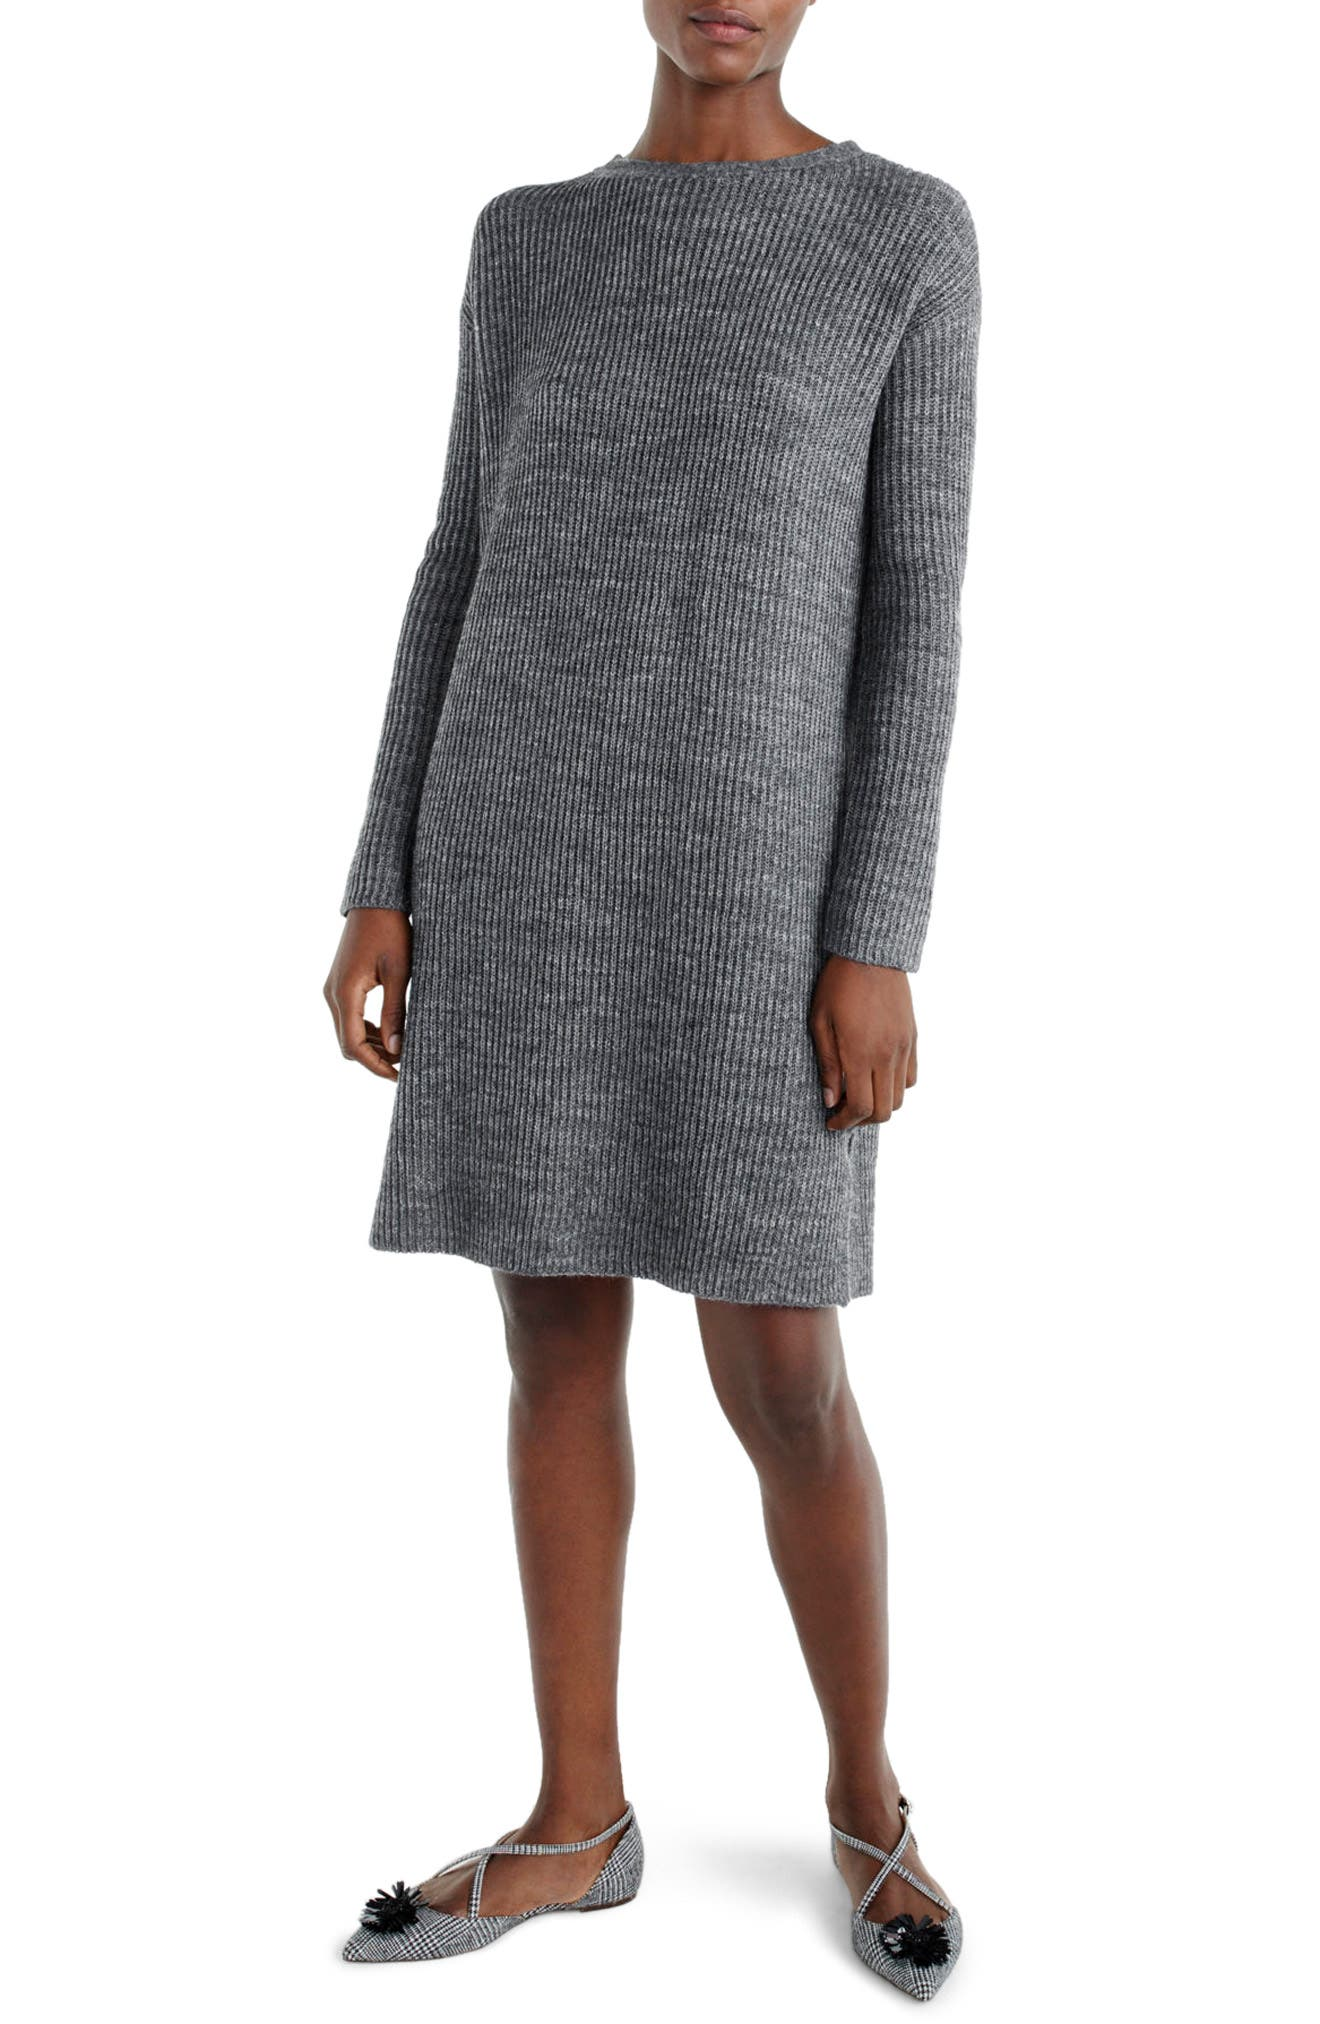 J.Crew Bow Tie Open Back Sweater Dress,                             Main thumbnail 1, color,                             Heather Flannel